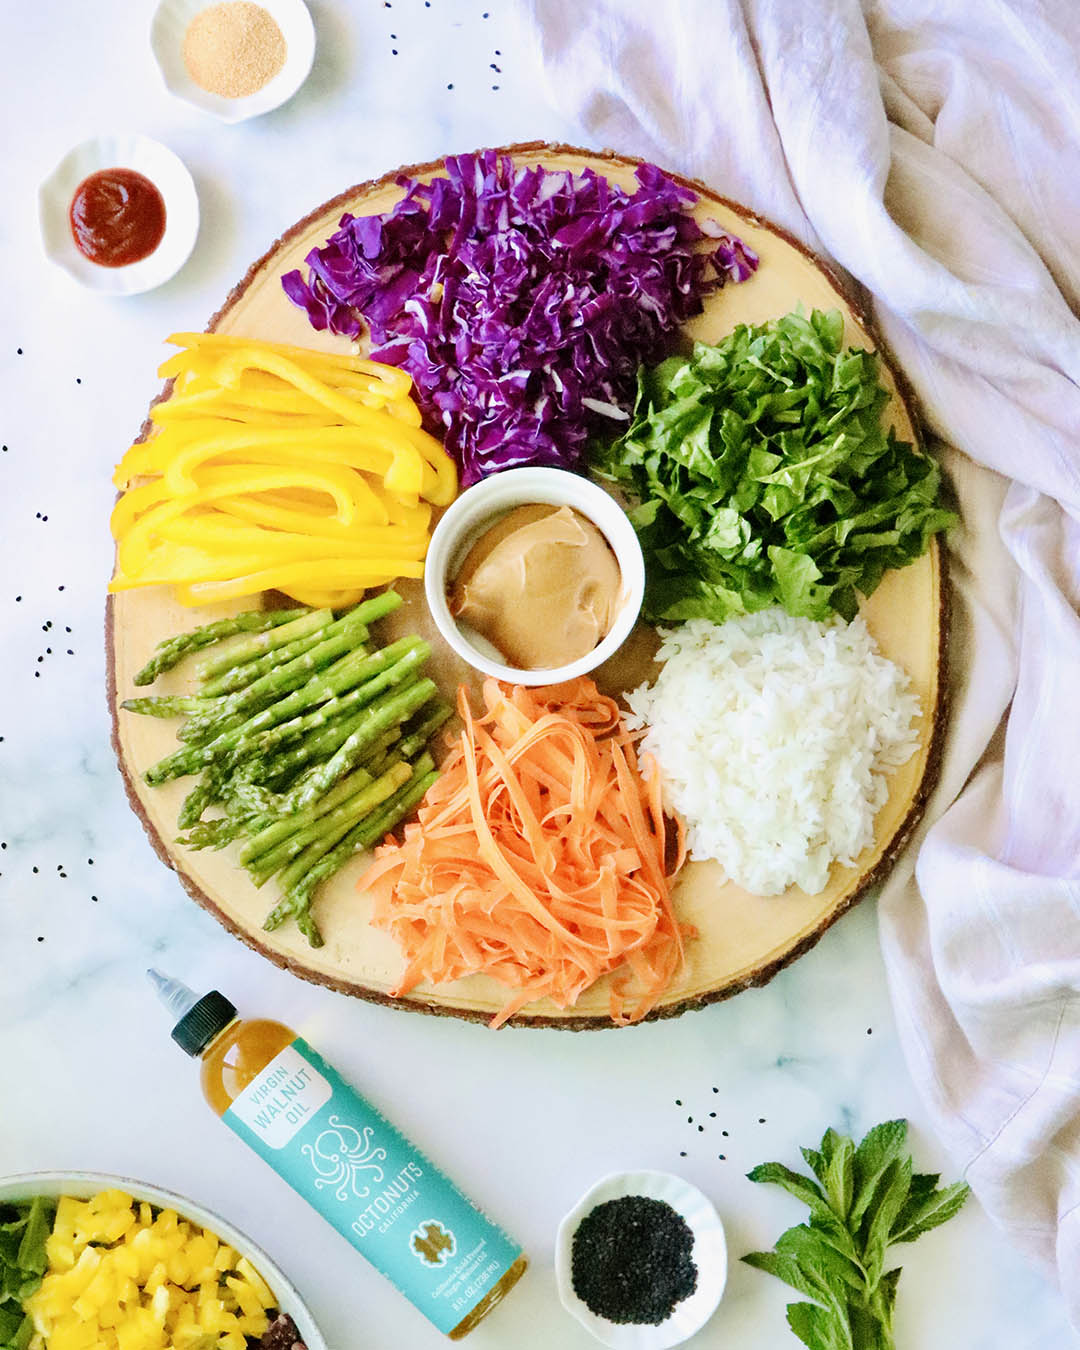 Rainbow Vegetable Spring Rolls with Octonuts Walnut Oil Dipping Sauce